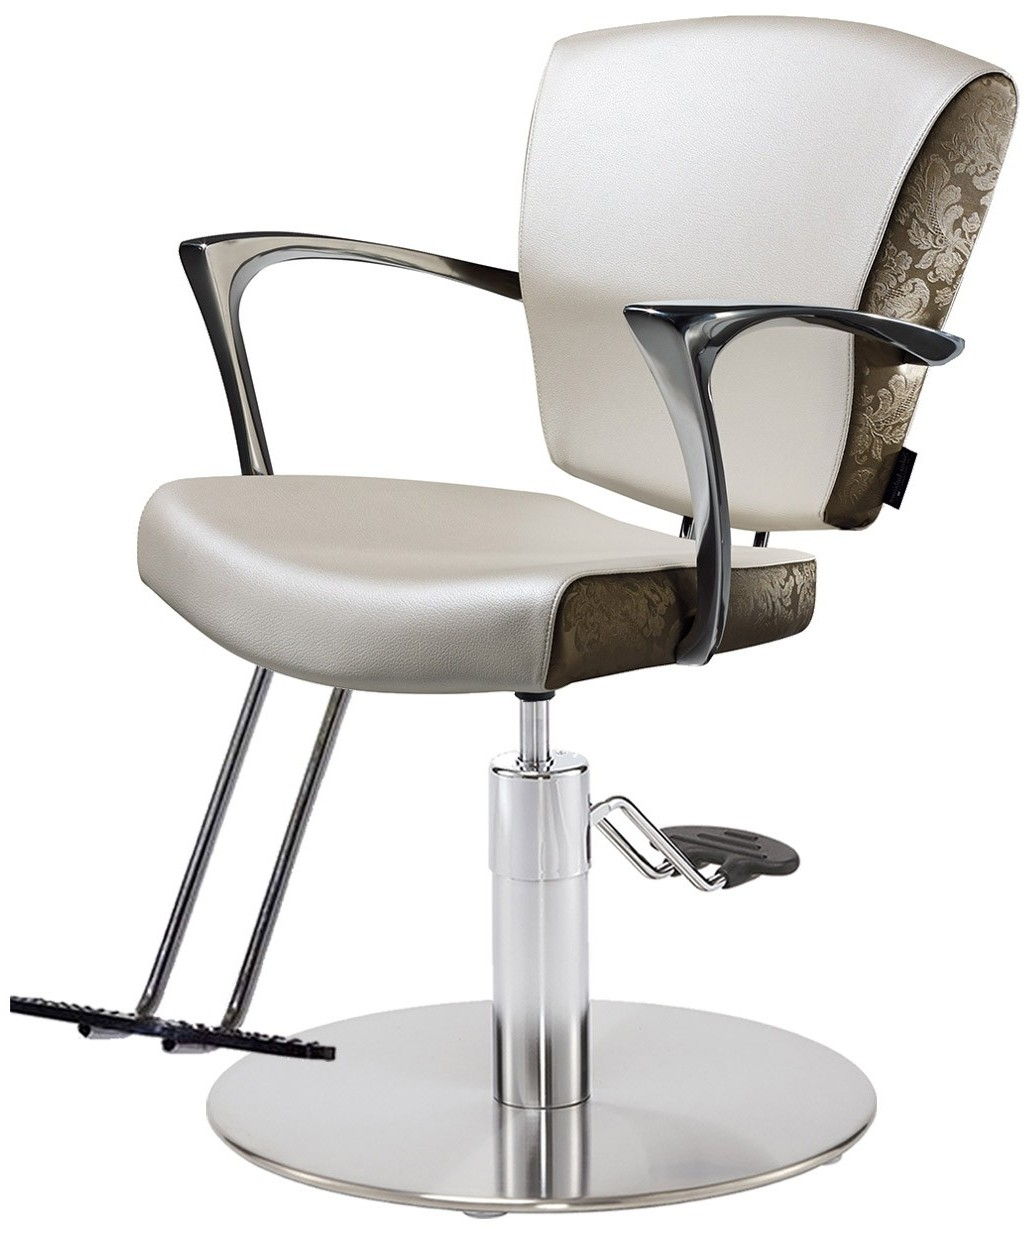 SH-410 Maya Styling Chair